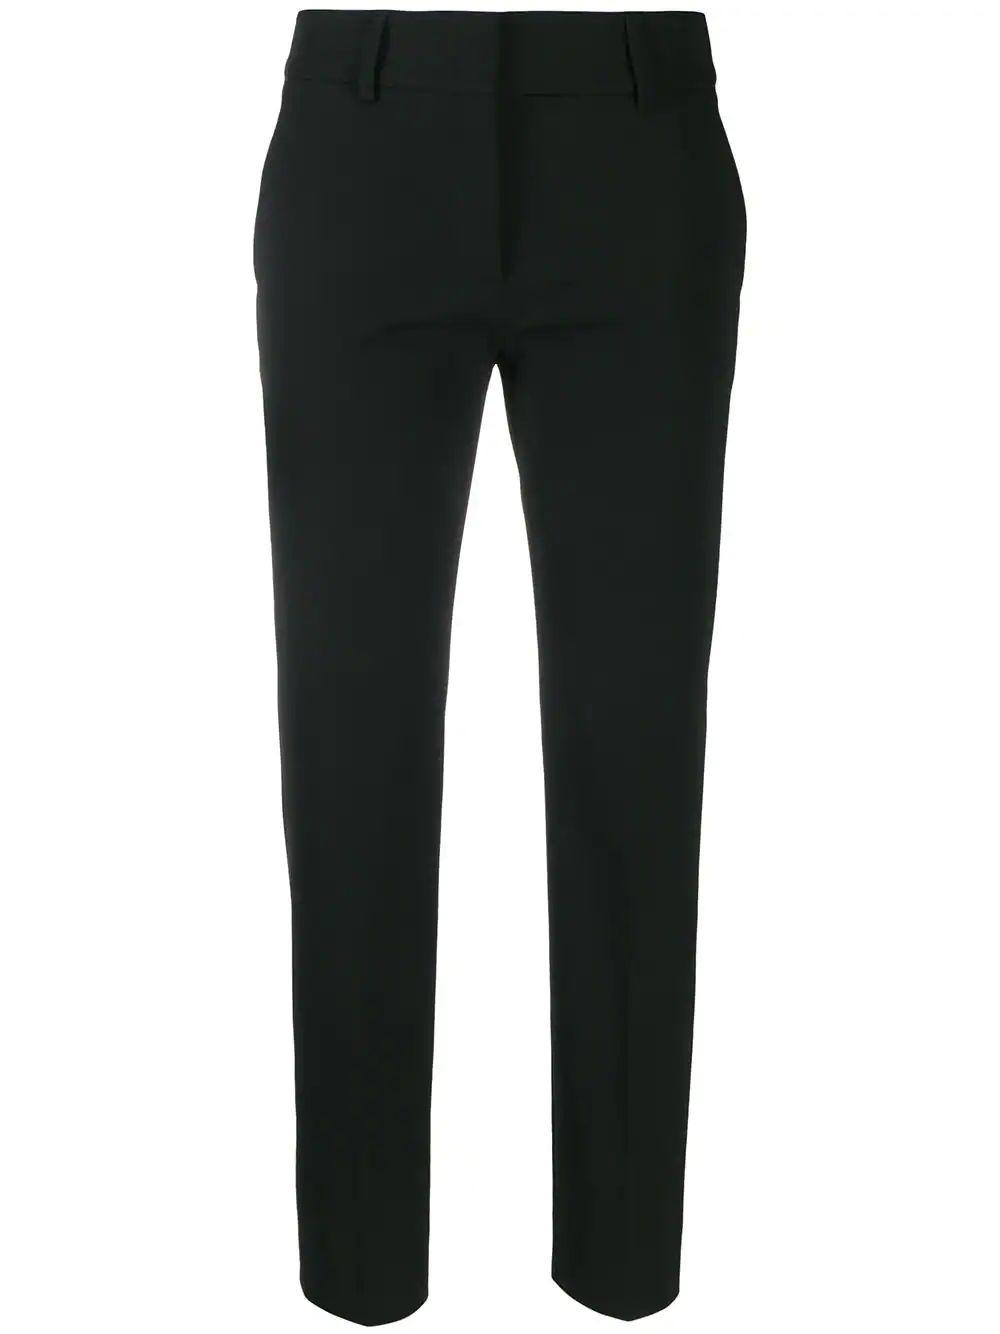 New 4- Way Stretch Front Zip Techno Pant Item # PP494-P0-S3235